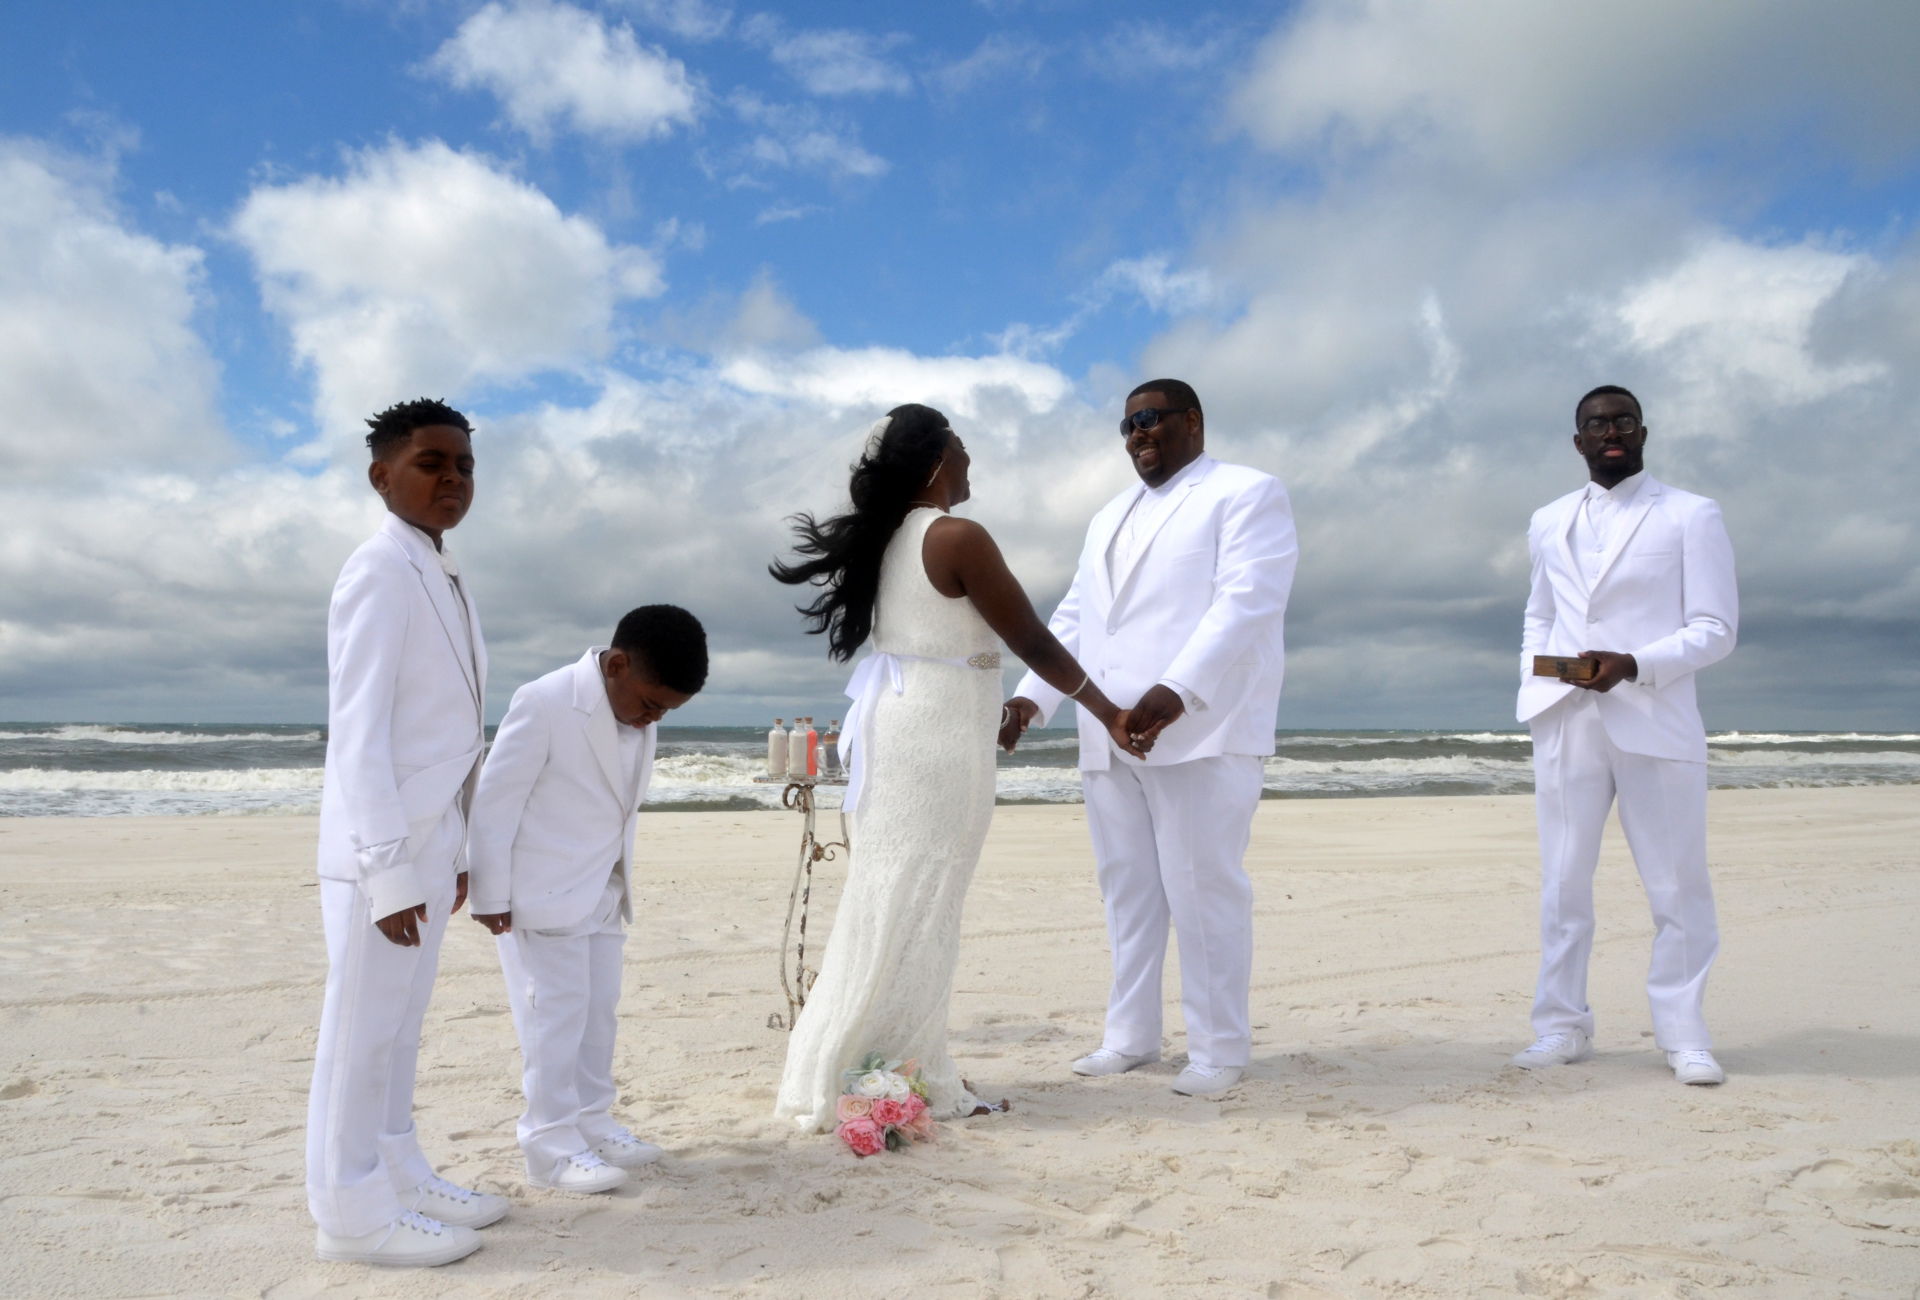 destin florida, barefoot weddings, beach wedding, vow renewal